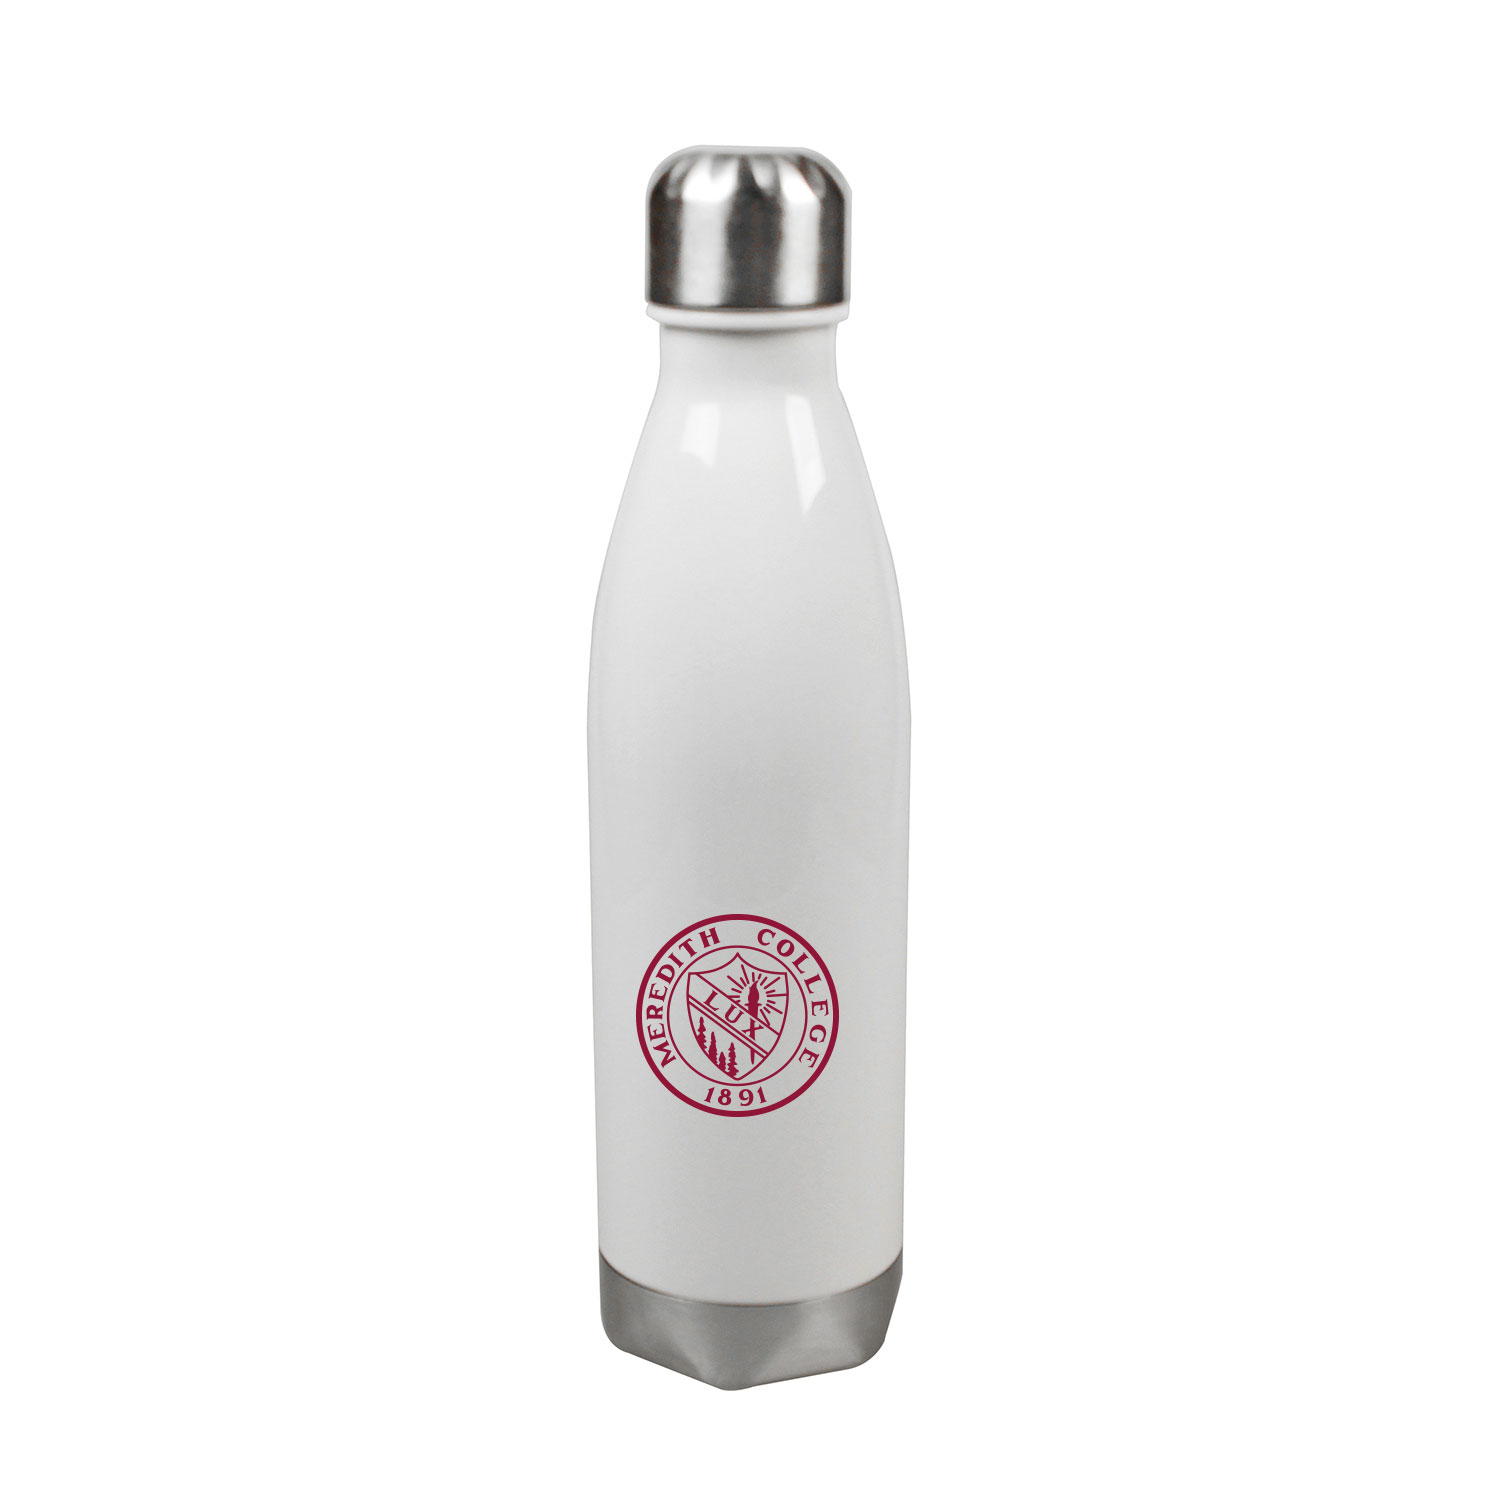 Image for the Tritan Mod Water Bottle, 25 oz. product